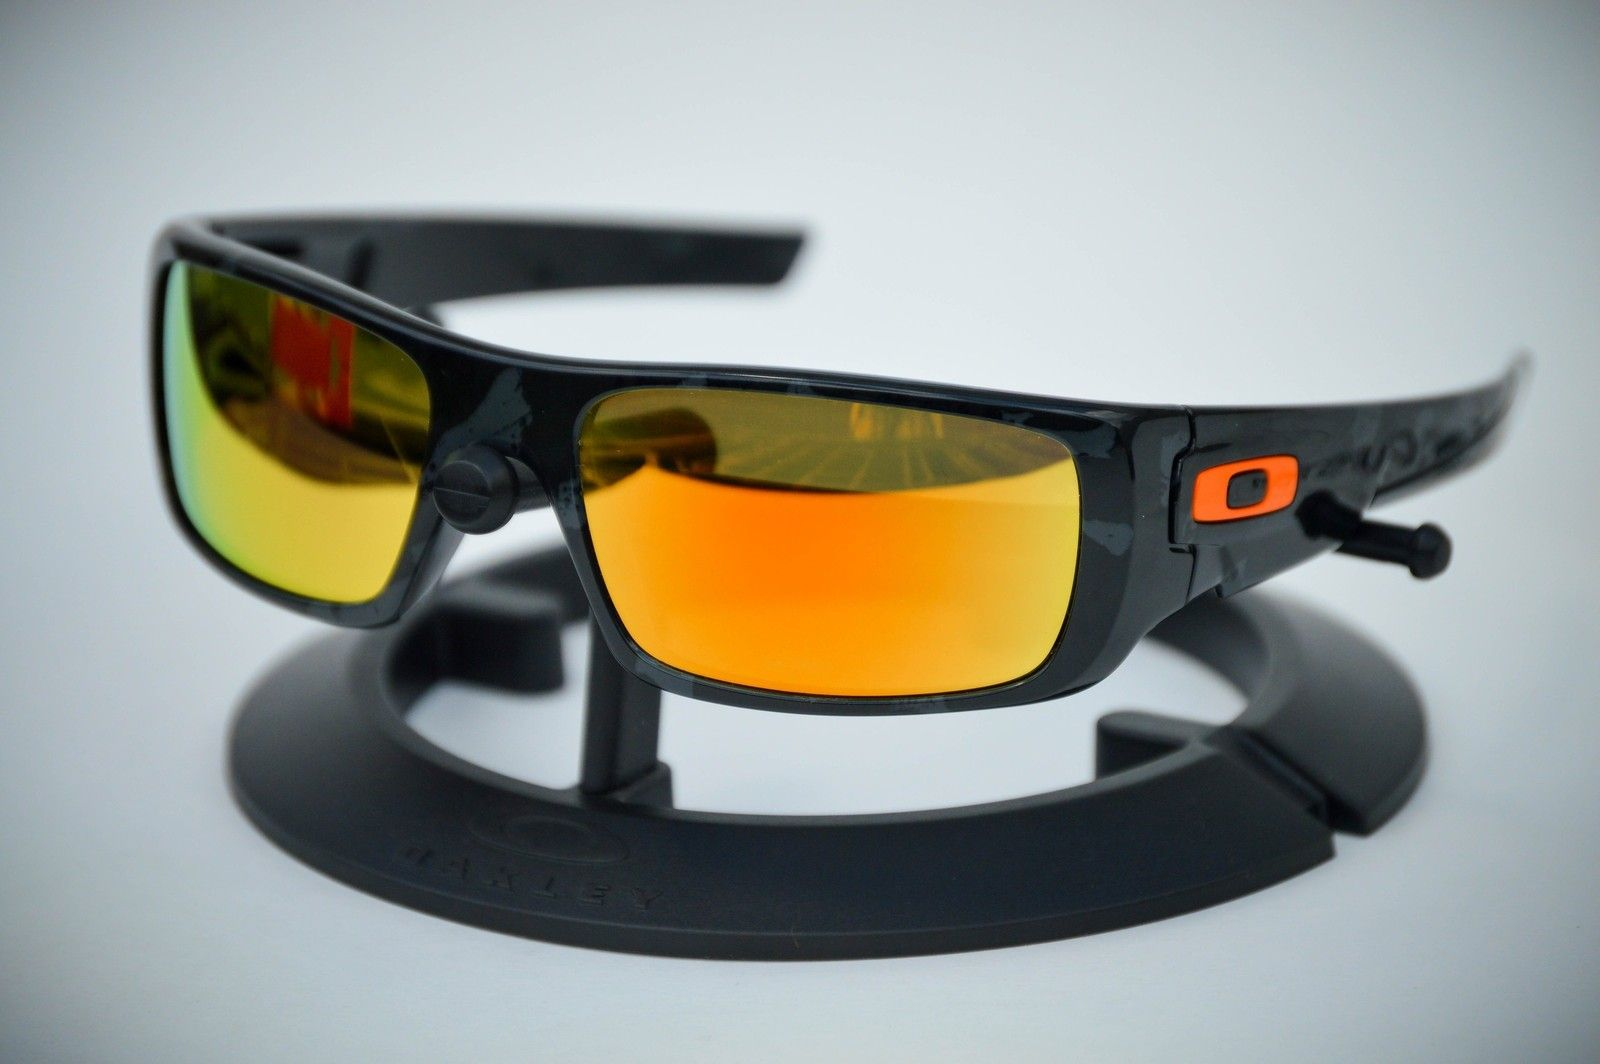 Custom Crankshaft Shadow Camo Fire irid/Orange Icons $115 - 0RJn7Y5.jpg